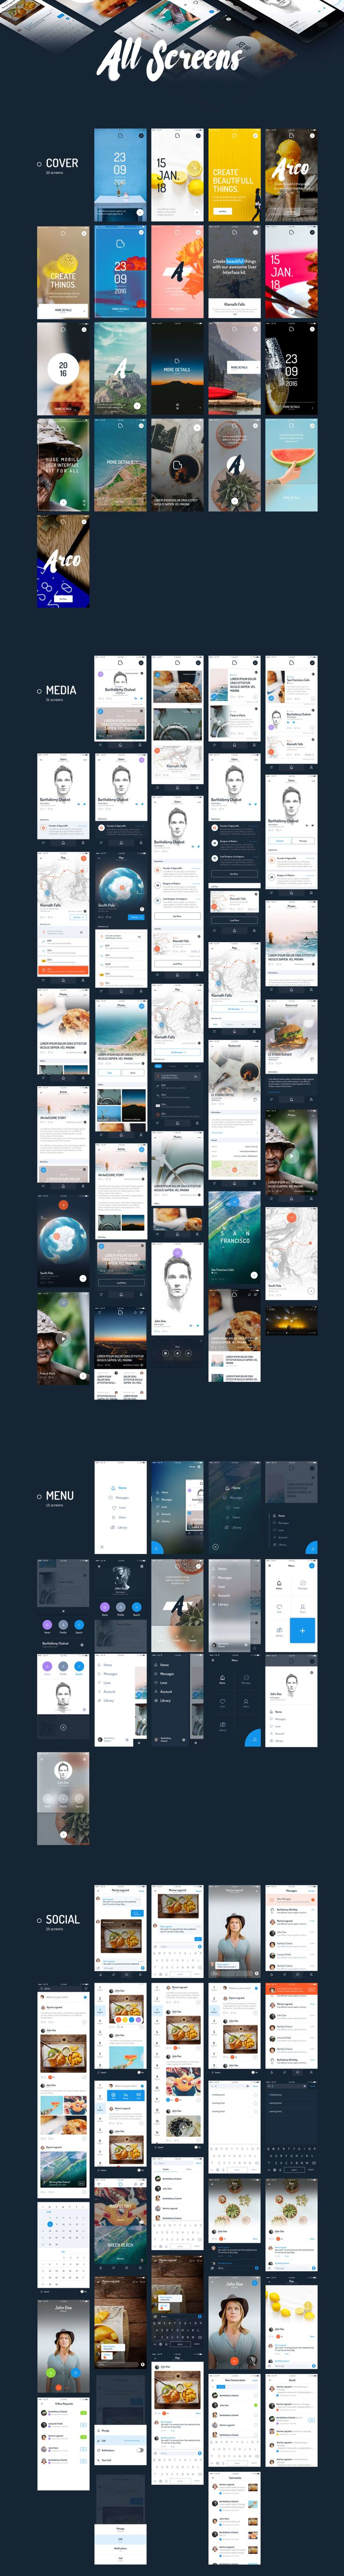 Huge Mobile UI Kit